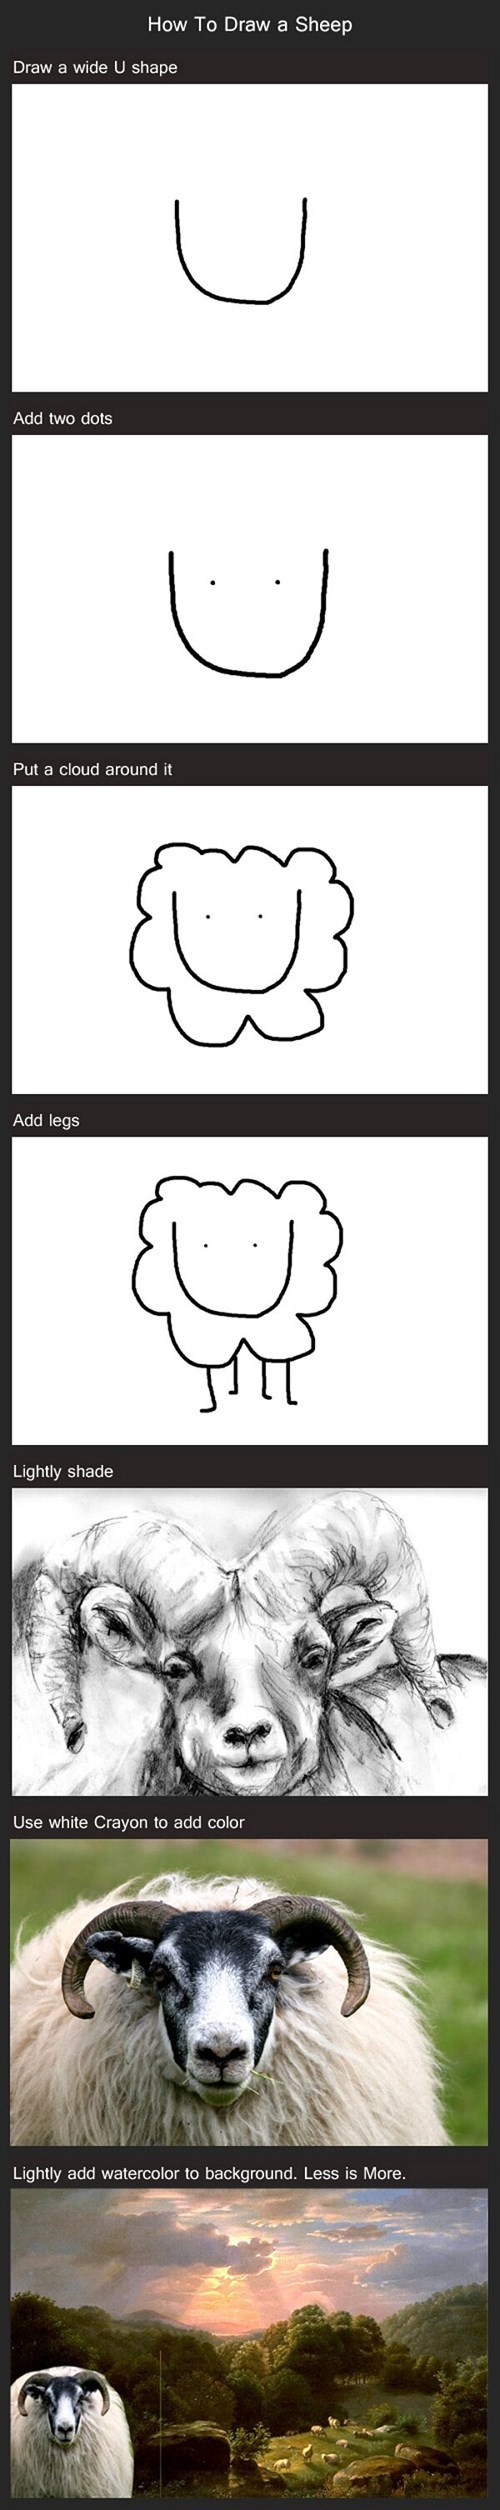 How to Draw an Epic Sheep